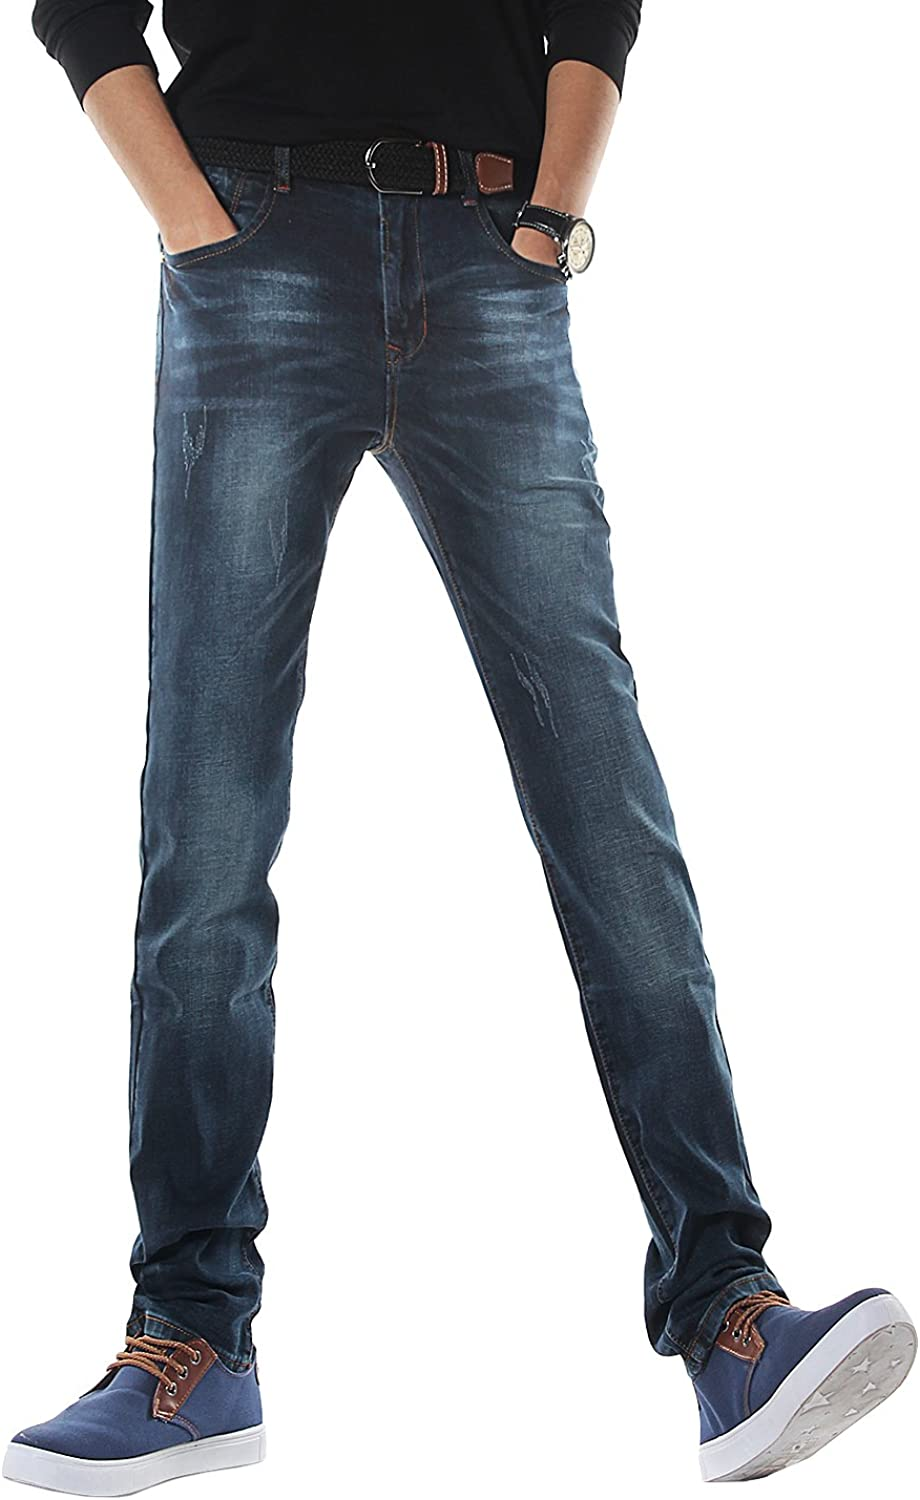 Demon&Hunter Men's Slim Fit Jeans Stretch S30S3